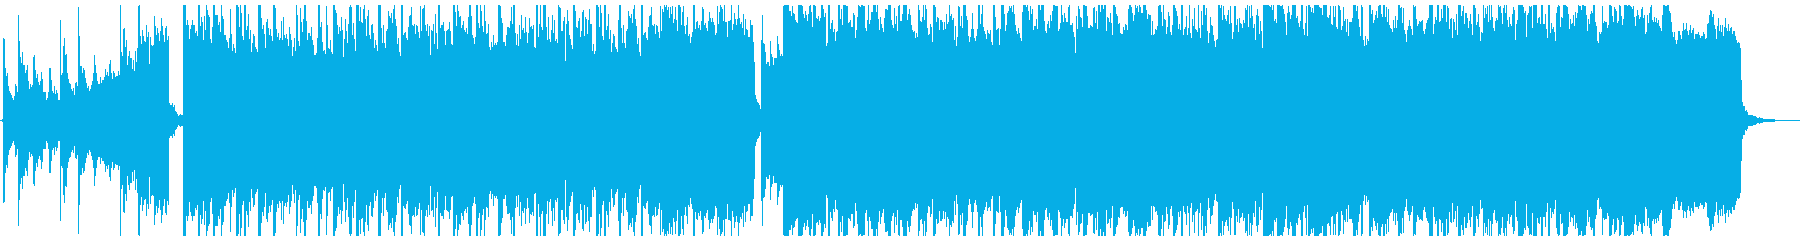 Fight To Live 60 sec's reproduced waveform